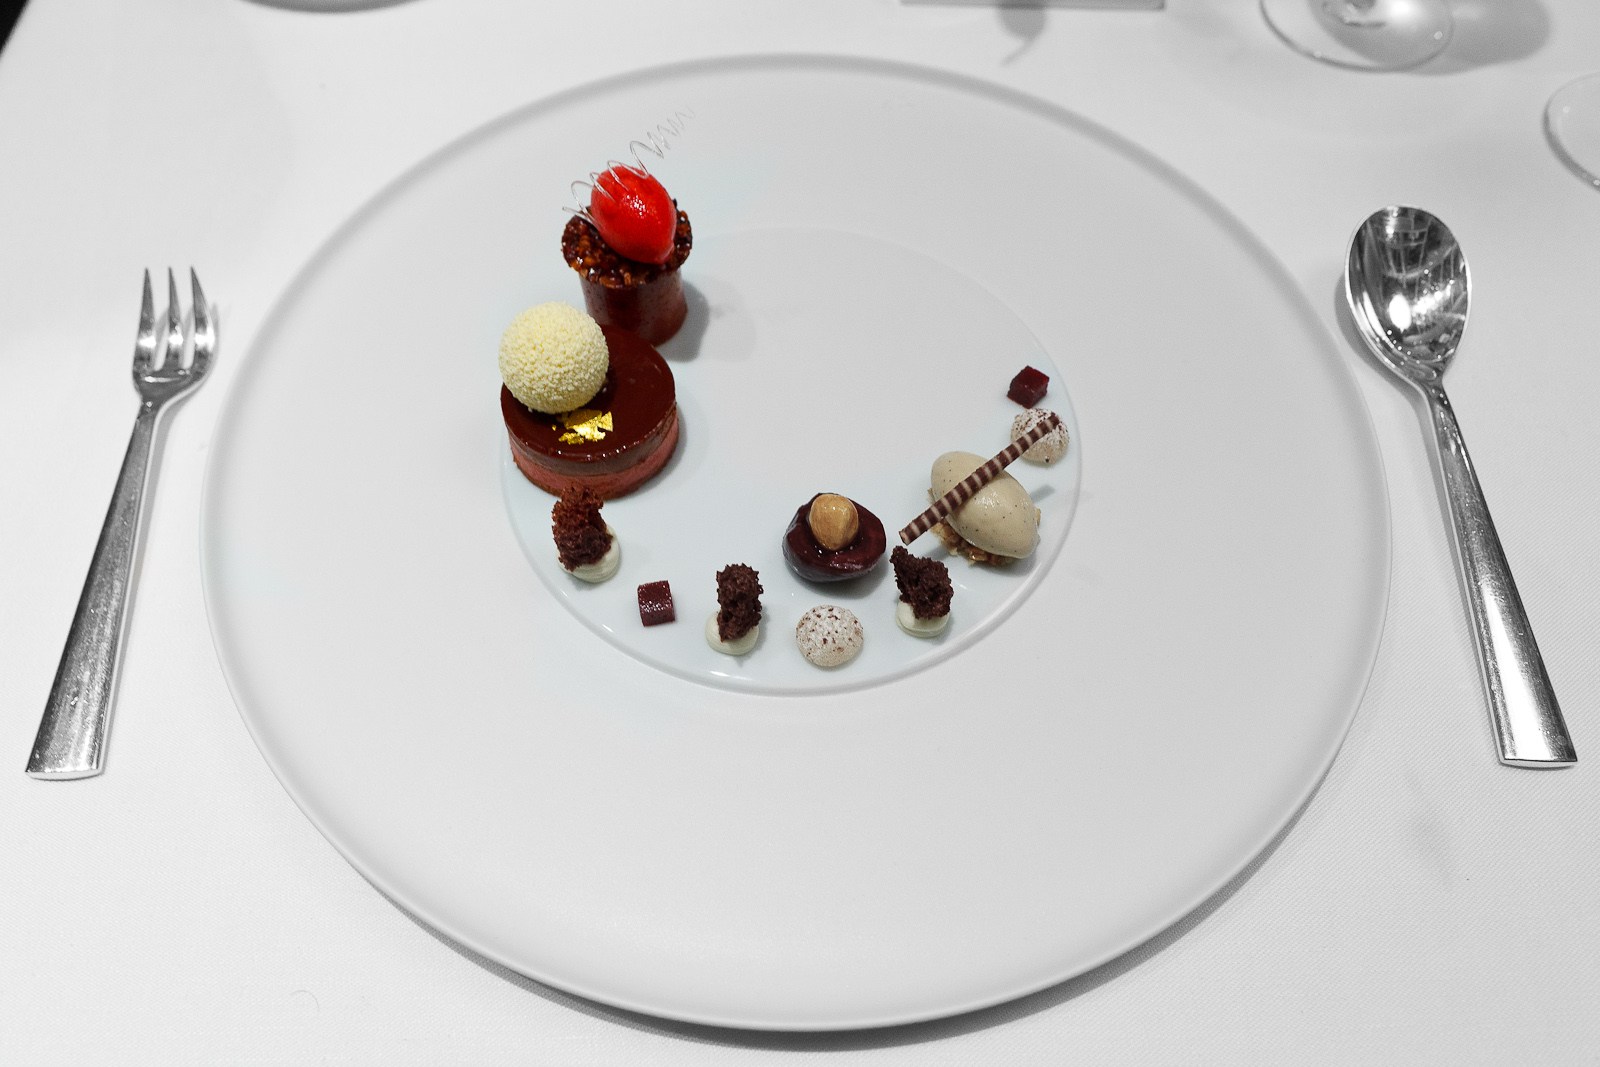 8th Course: Black forest gâteau, by Christian Bau